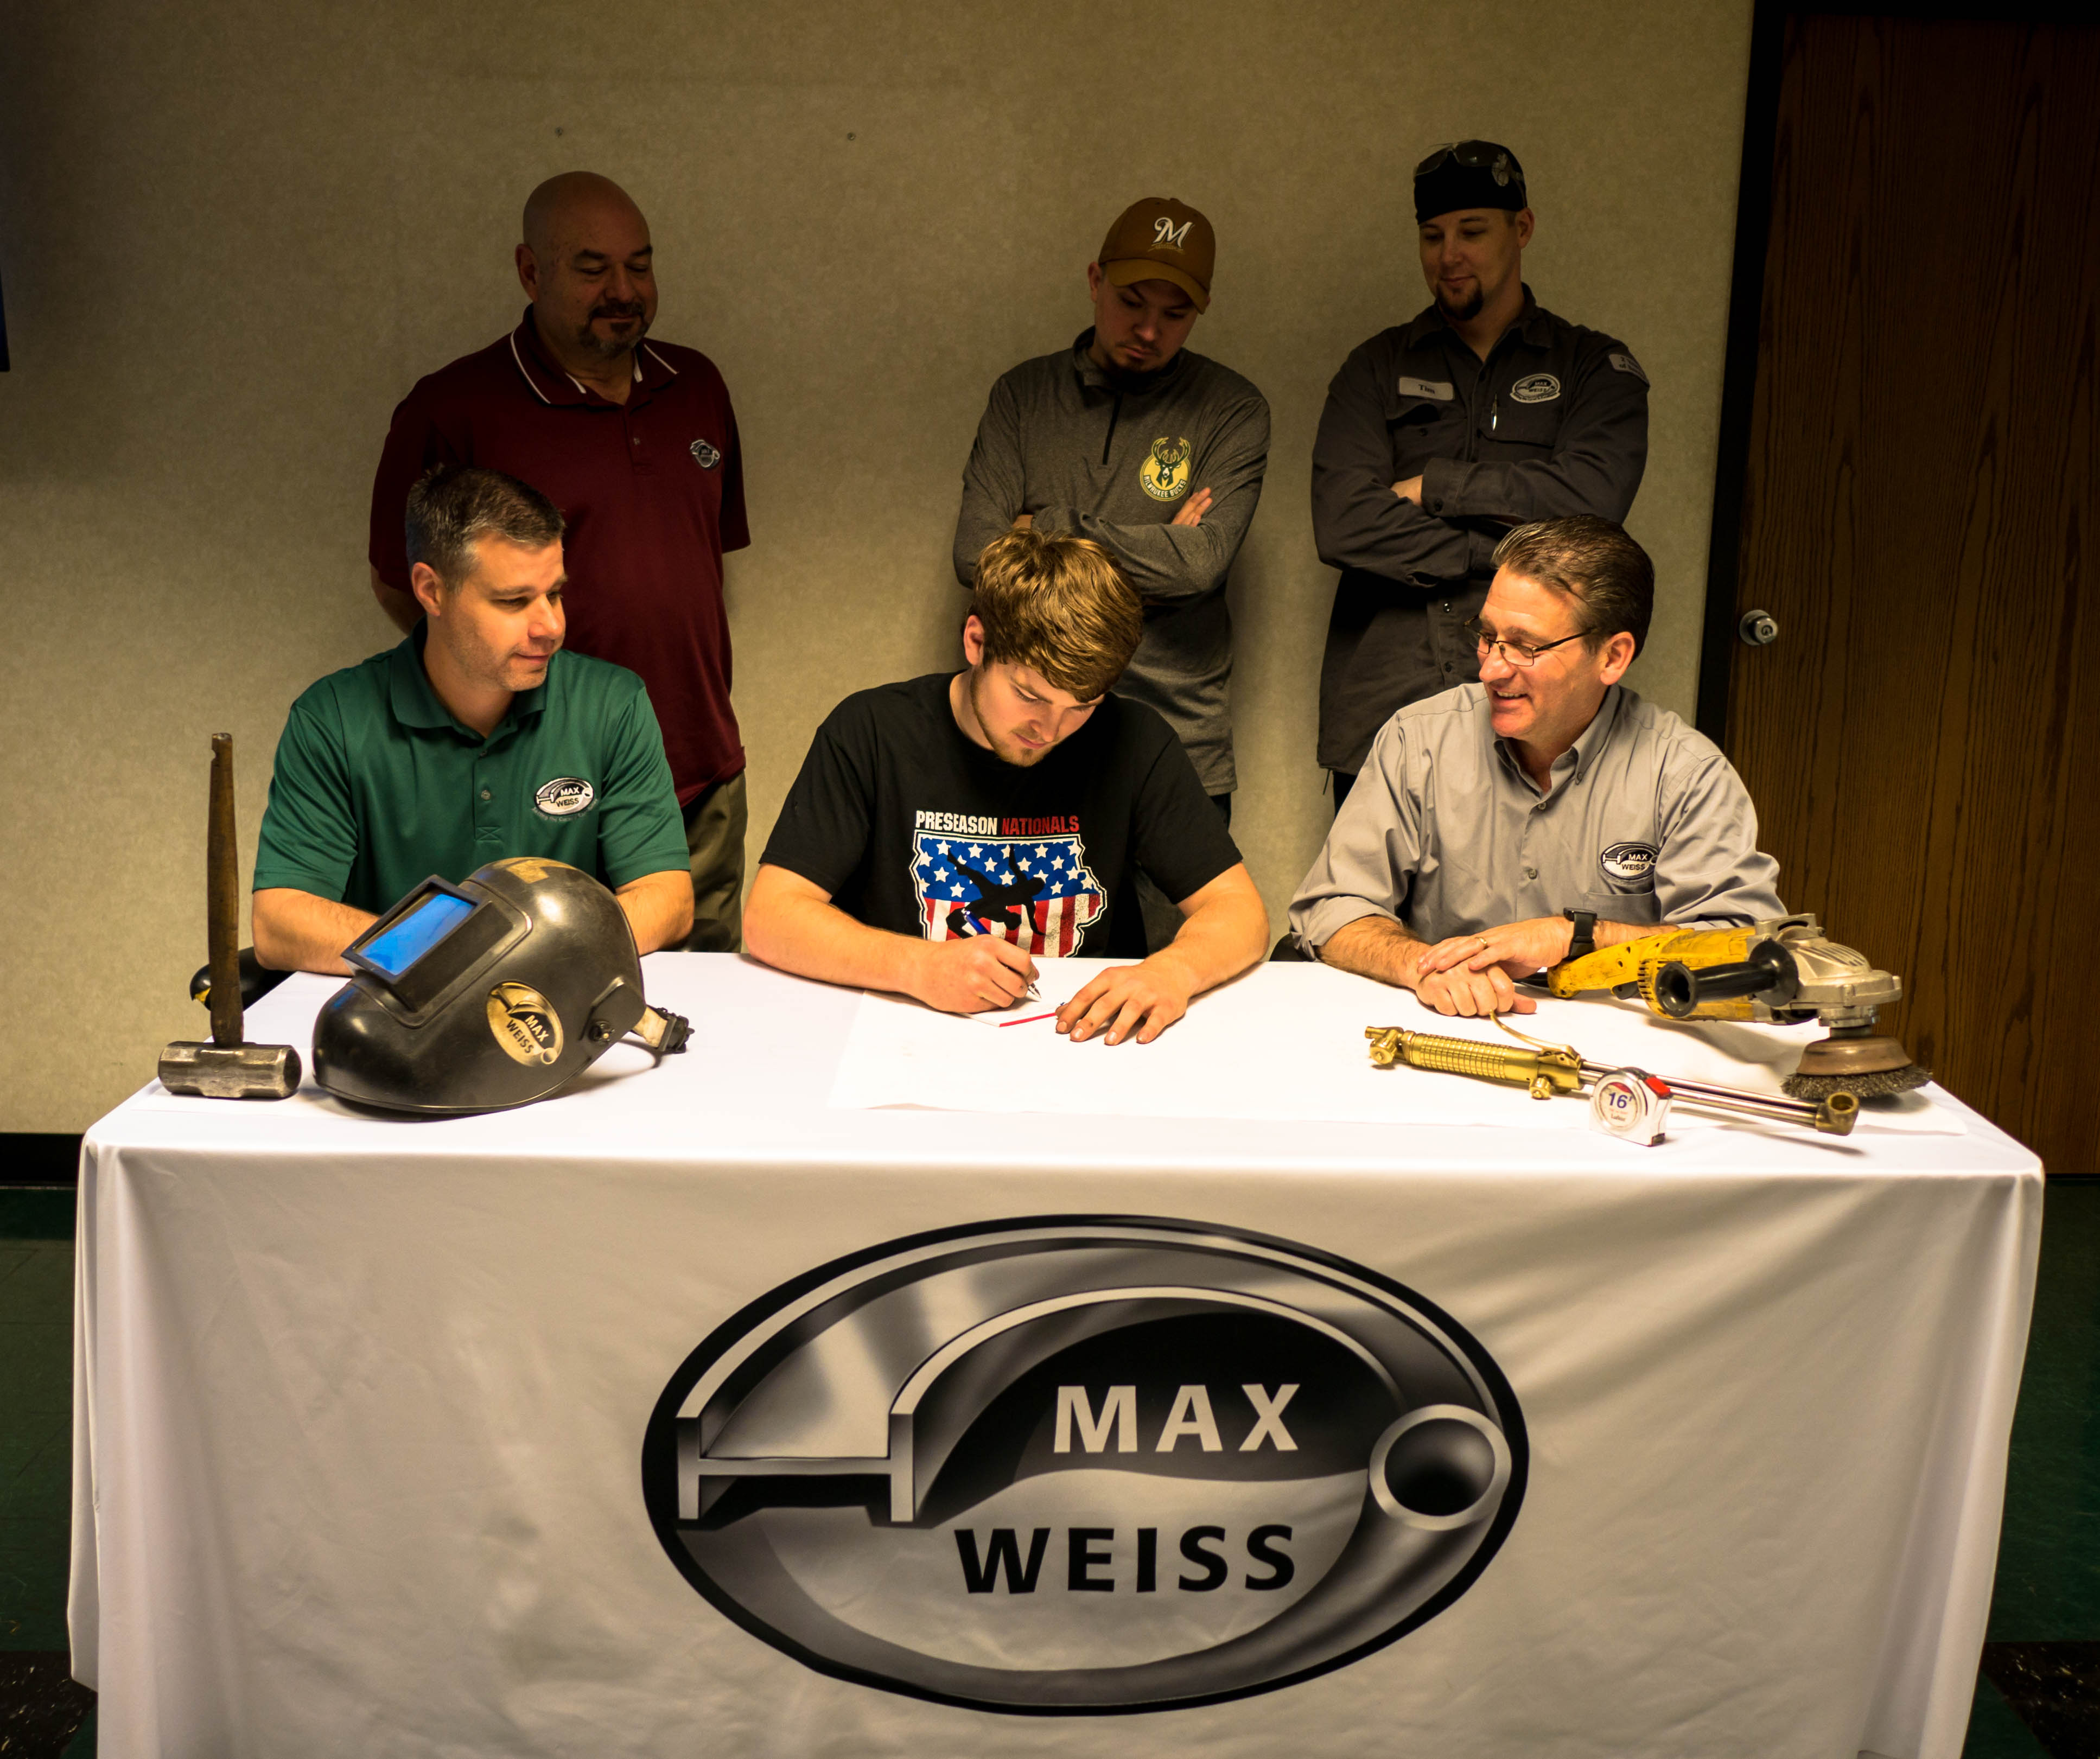 Grayson Vandenbush Signing Day. Photo courtesy of the Max Weiss Company.